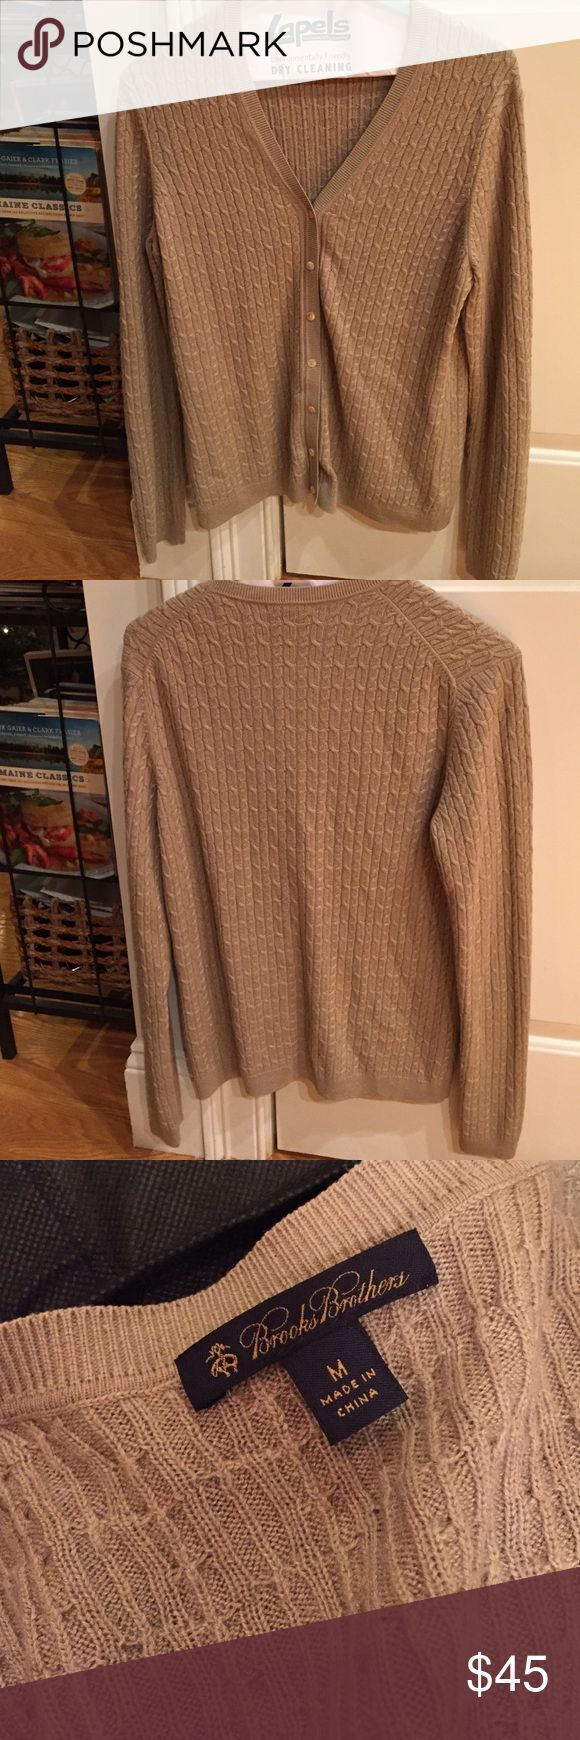 Brooks Brothers Silk and Cashmere Sweater Brooks Brothers Silk and Cashmere Sweater Brooks Brothers Sweaters Cardigans